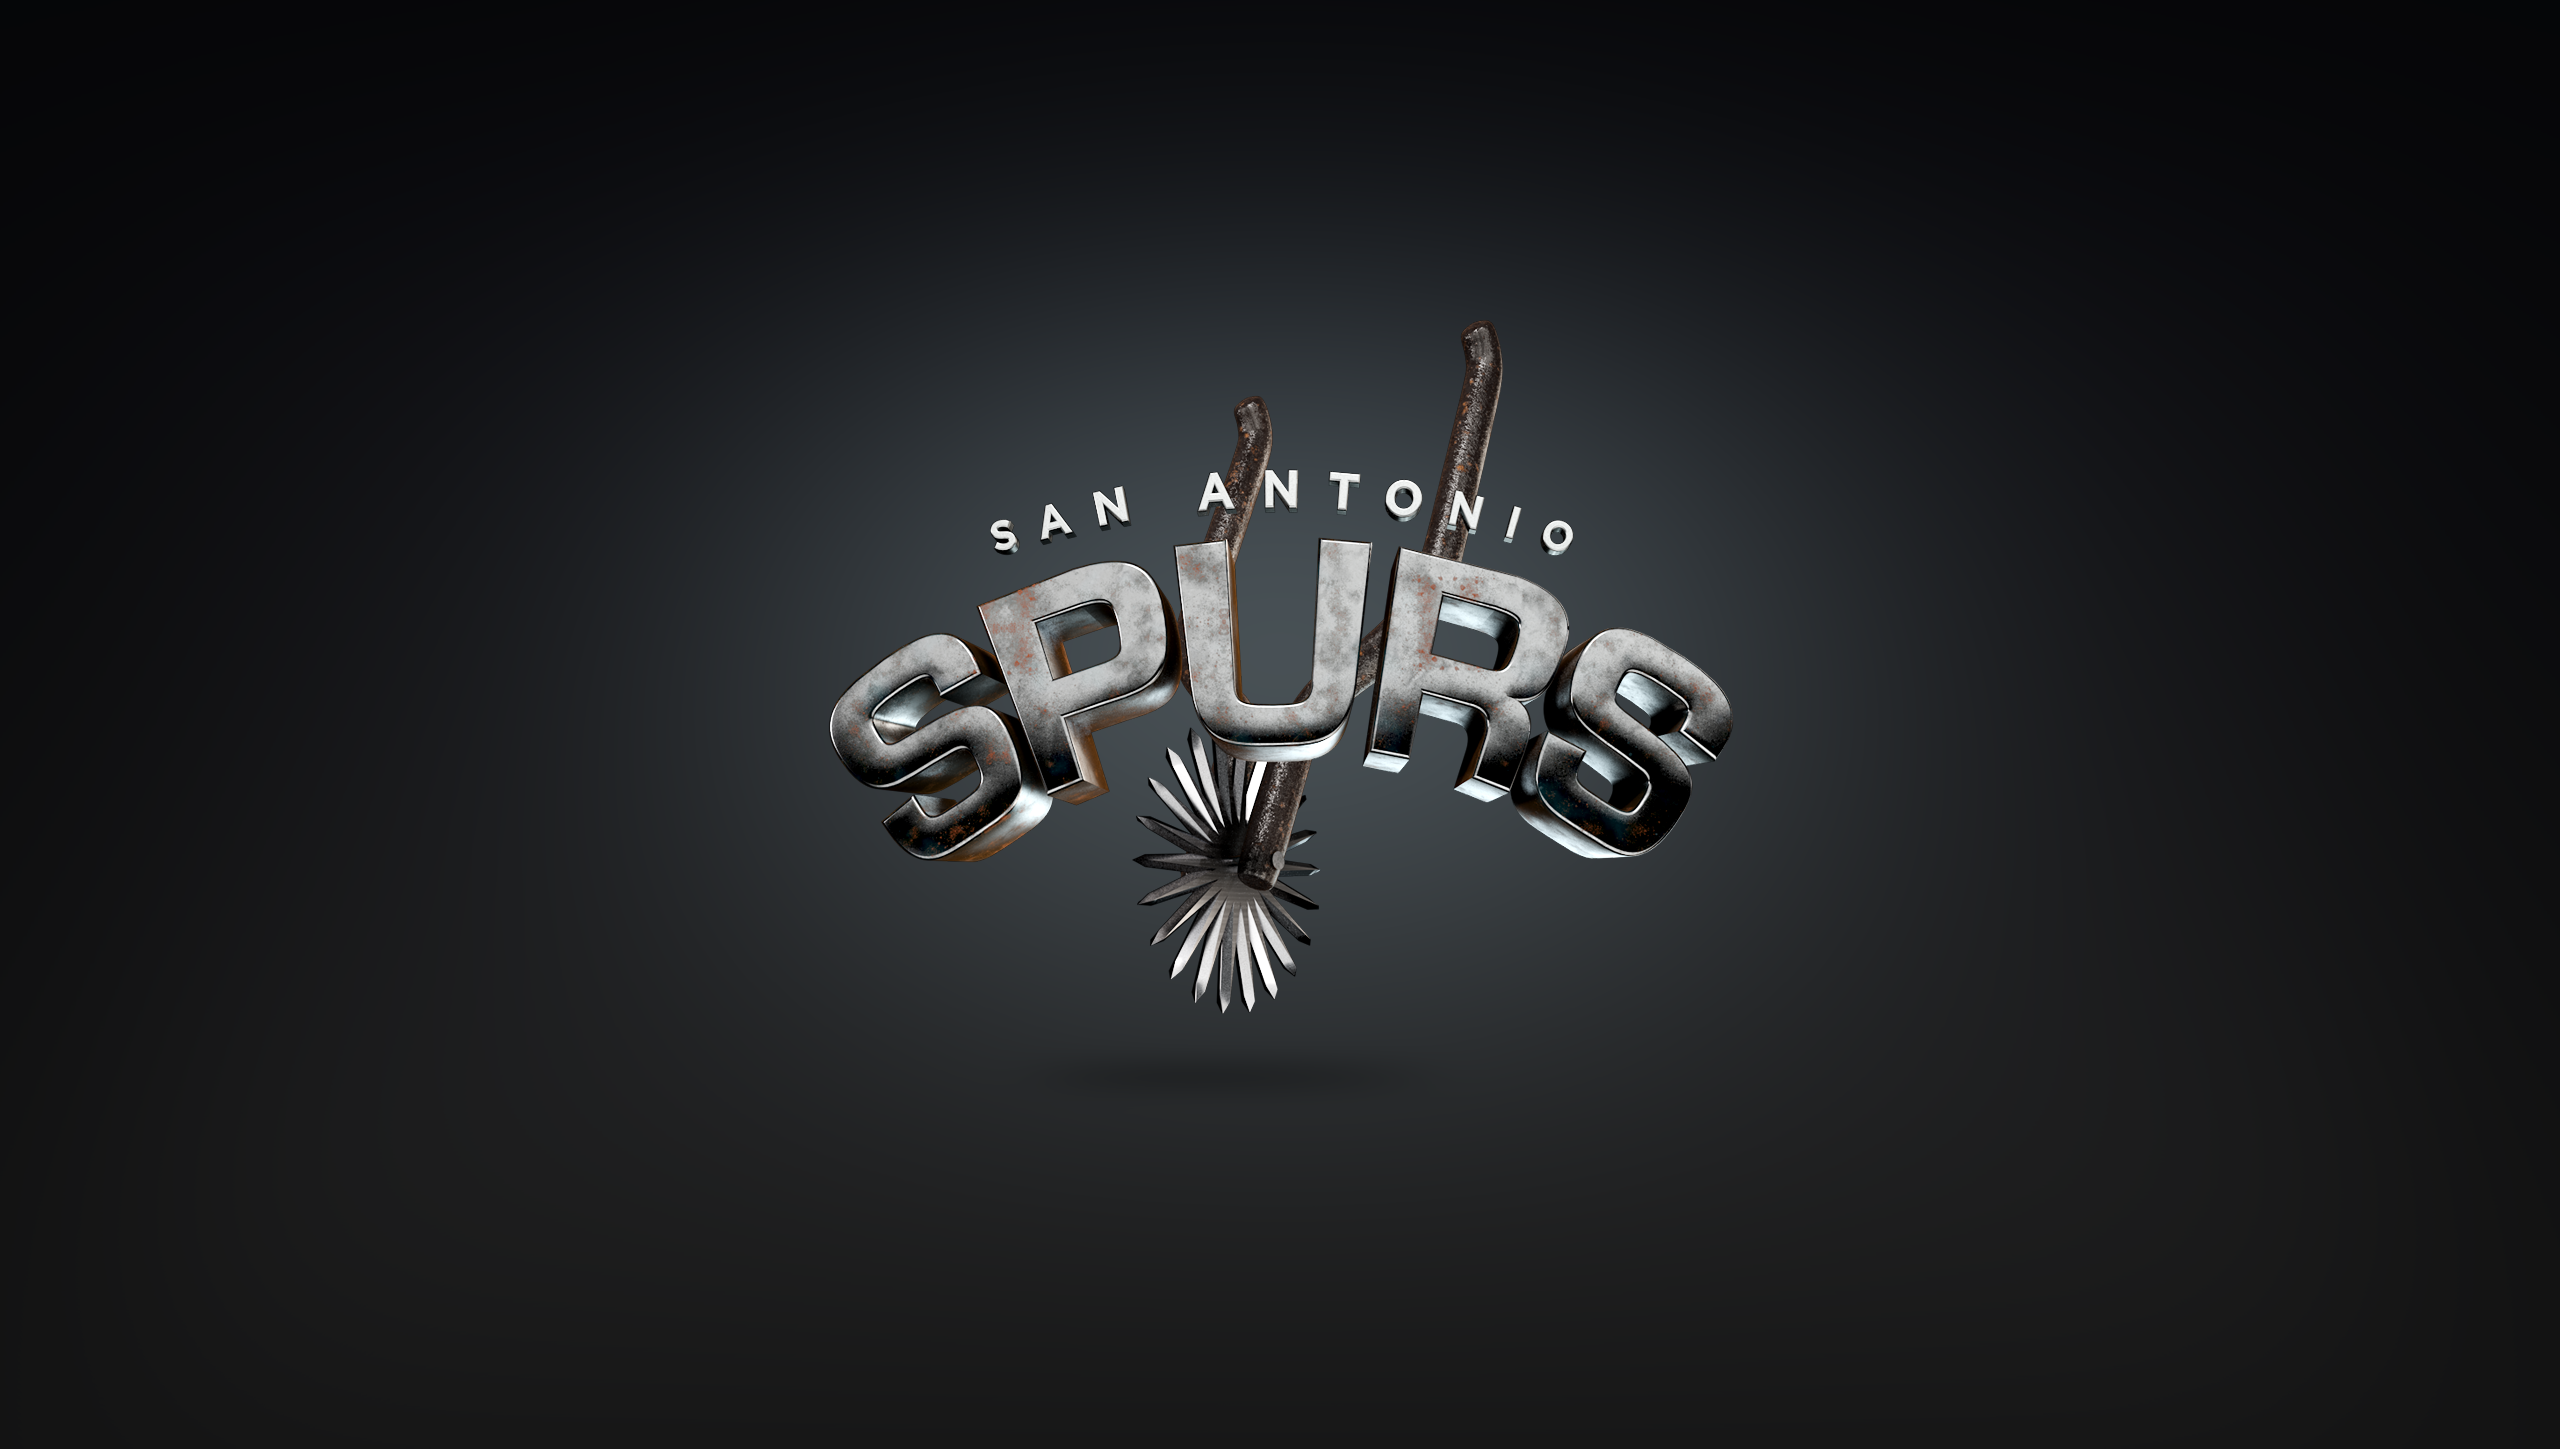 San Antonio Spurs Wallpapers Top Free San Antonio Spurs